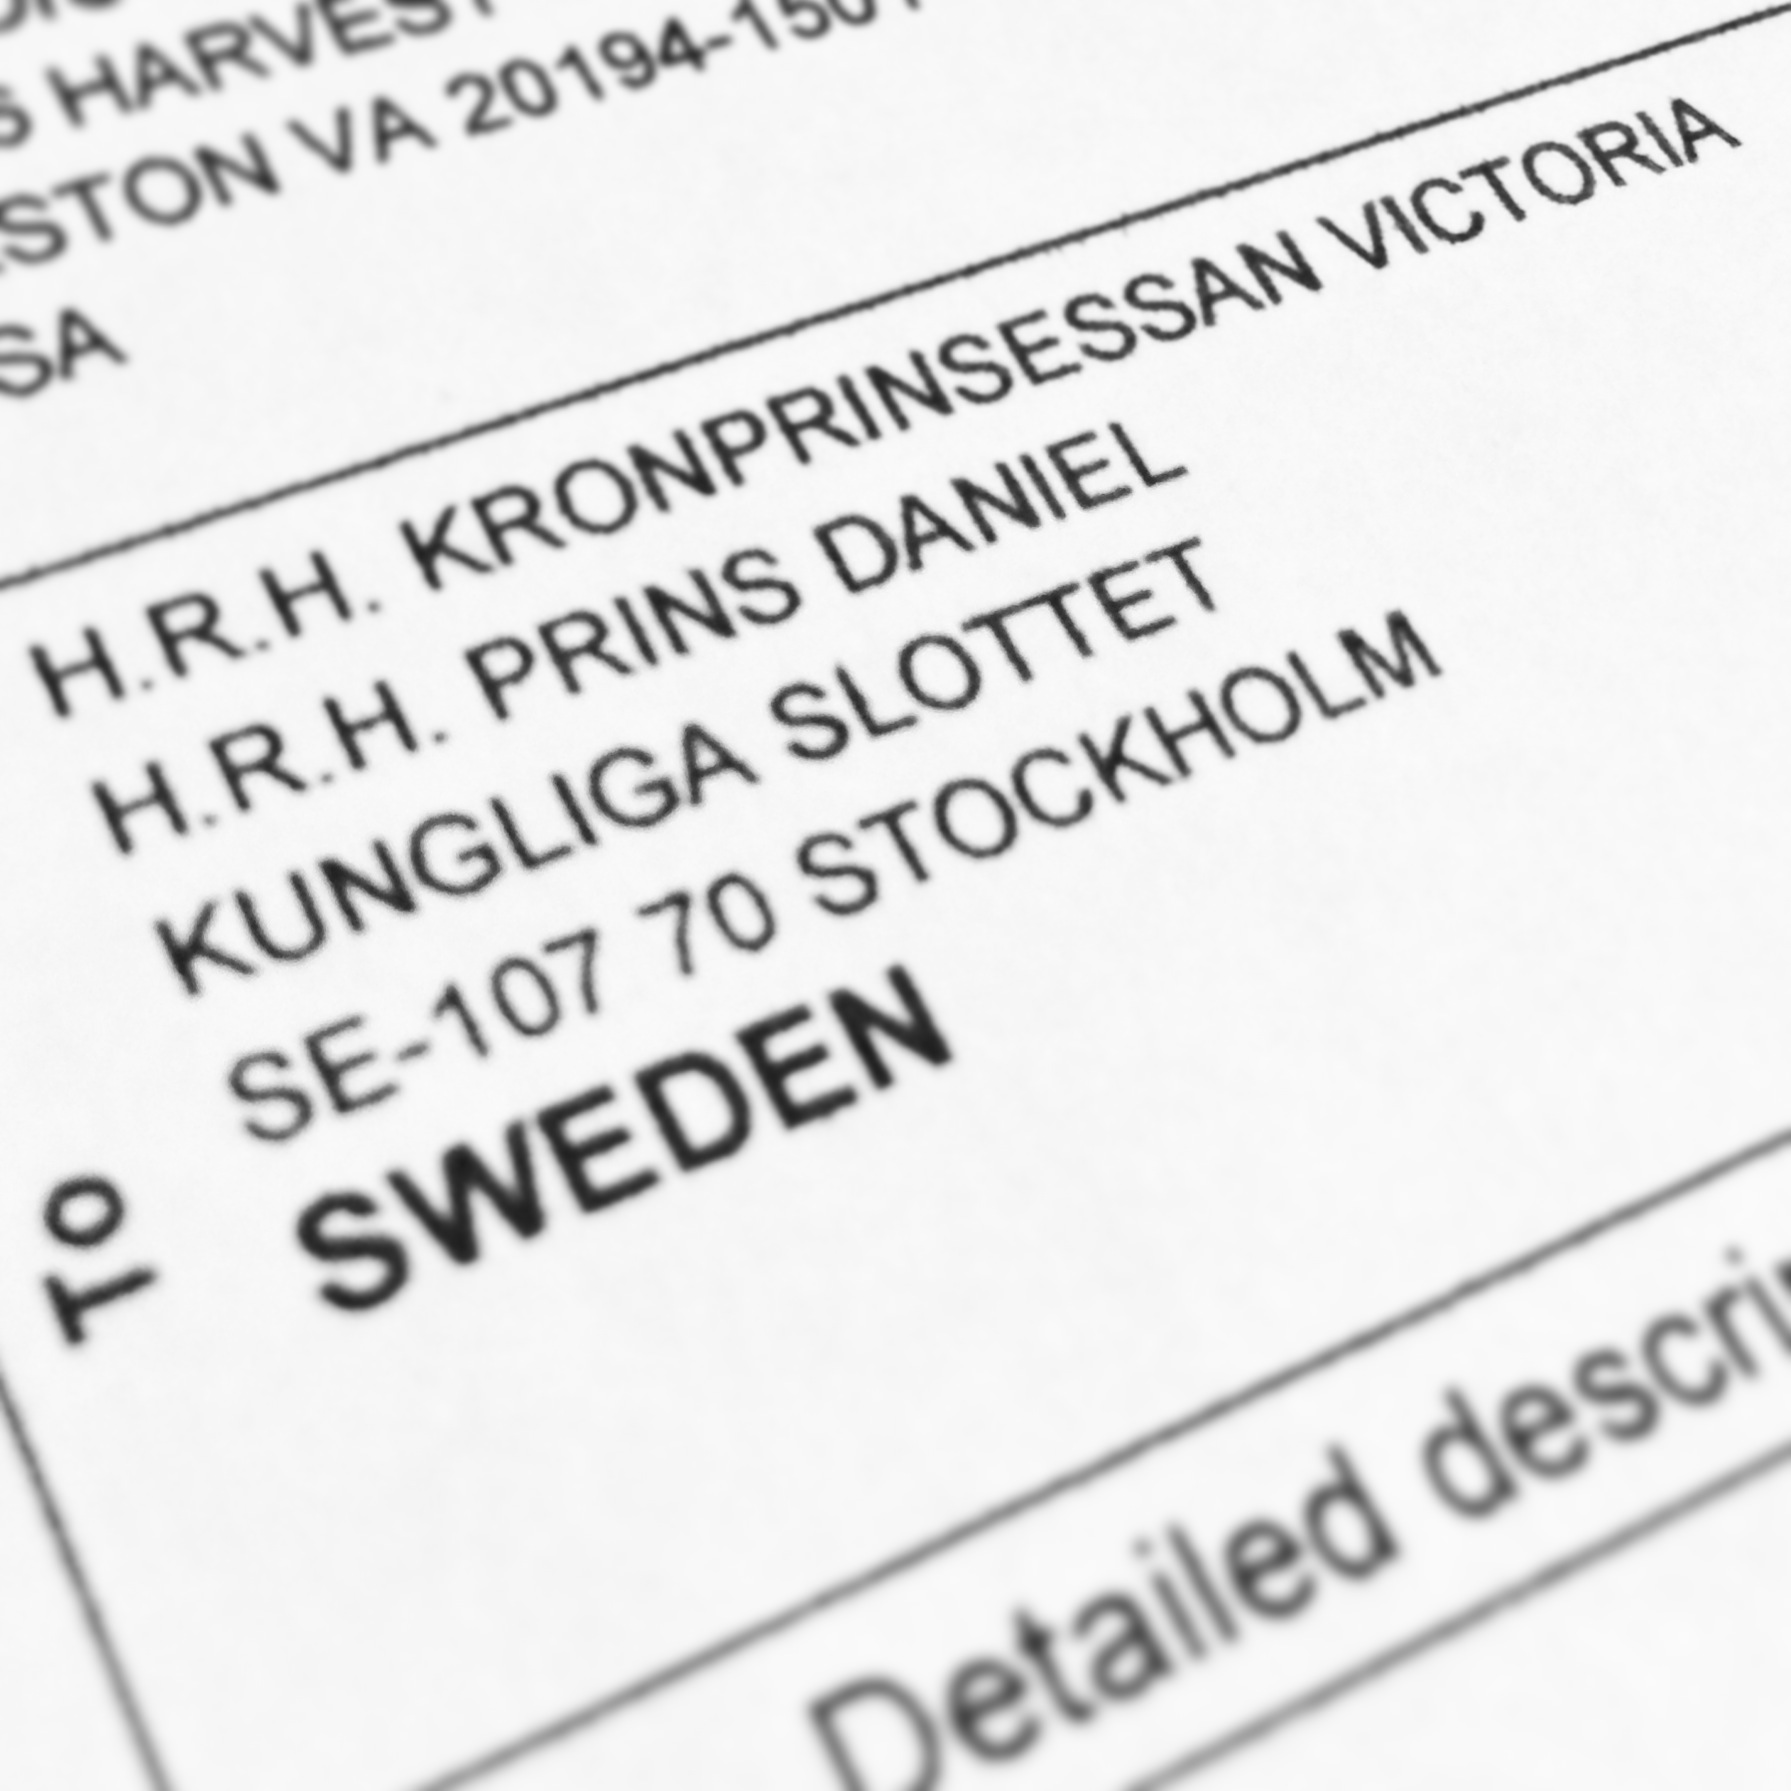 Shipment to the Swedish Royal Court